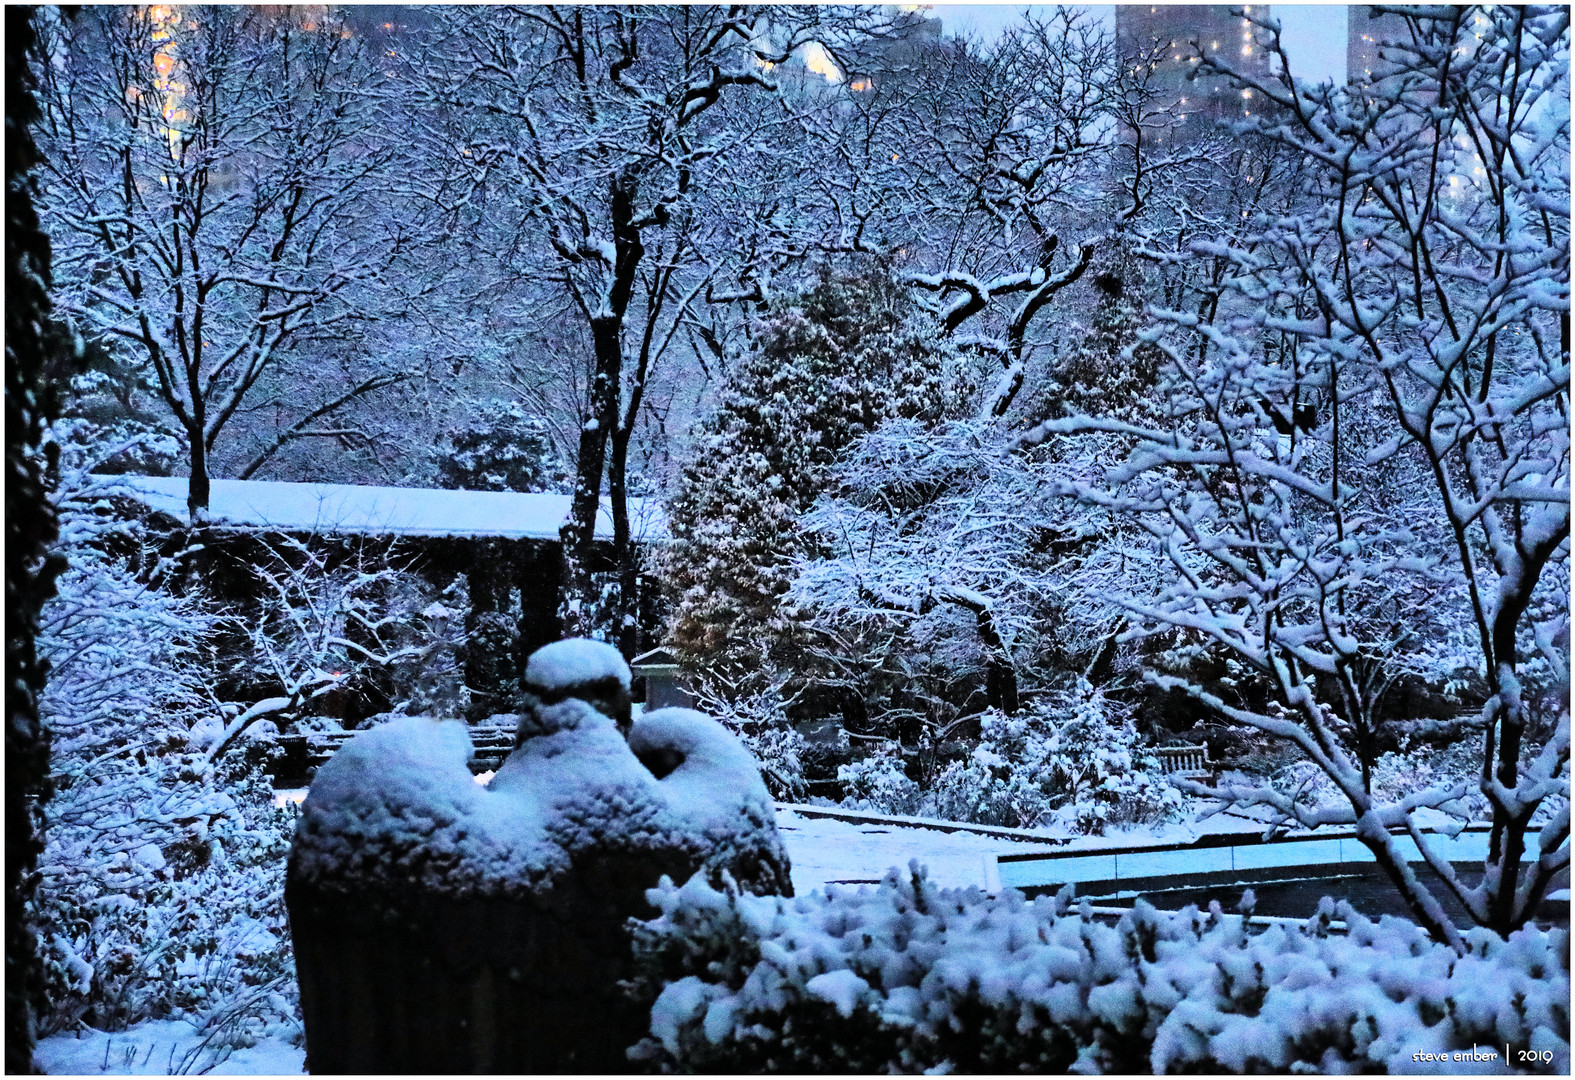 On a Snowy Evening in Central Park - No.10